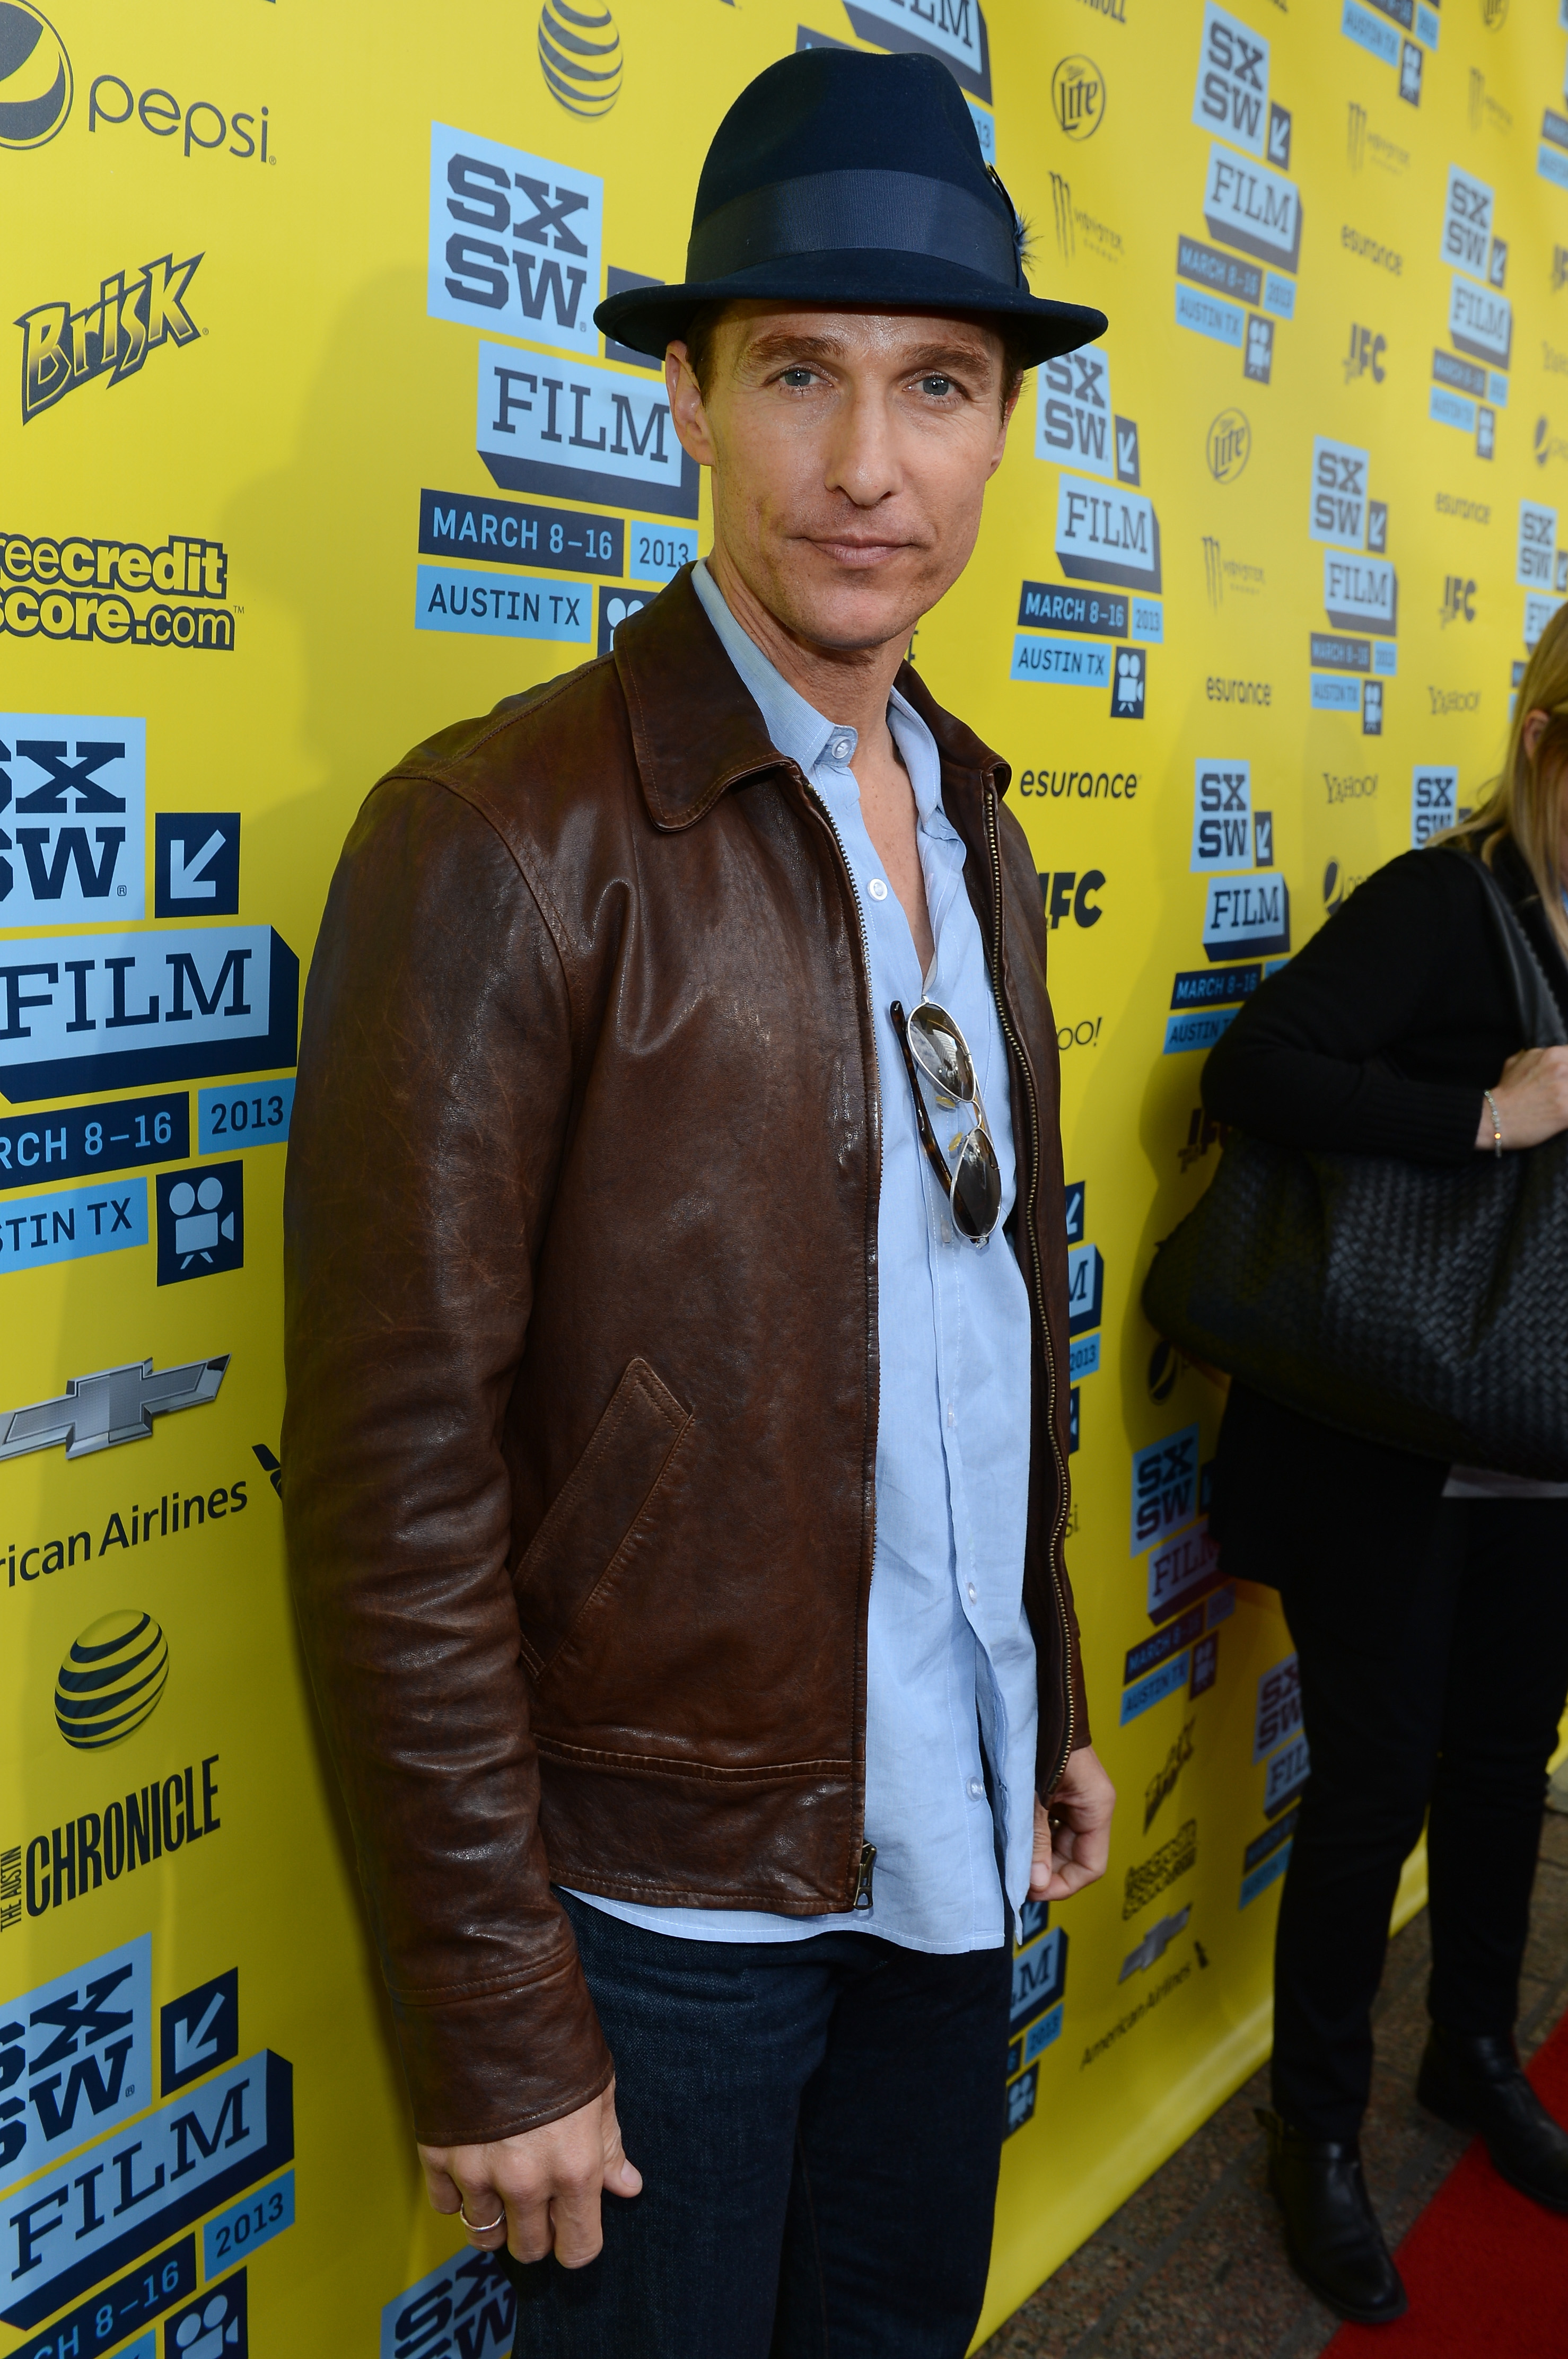 Matthew McConaughey stepped out for his Mud screening at SXSW.